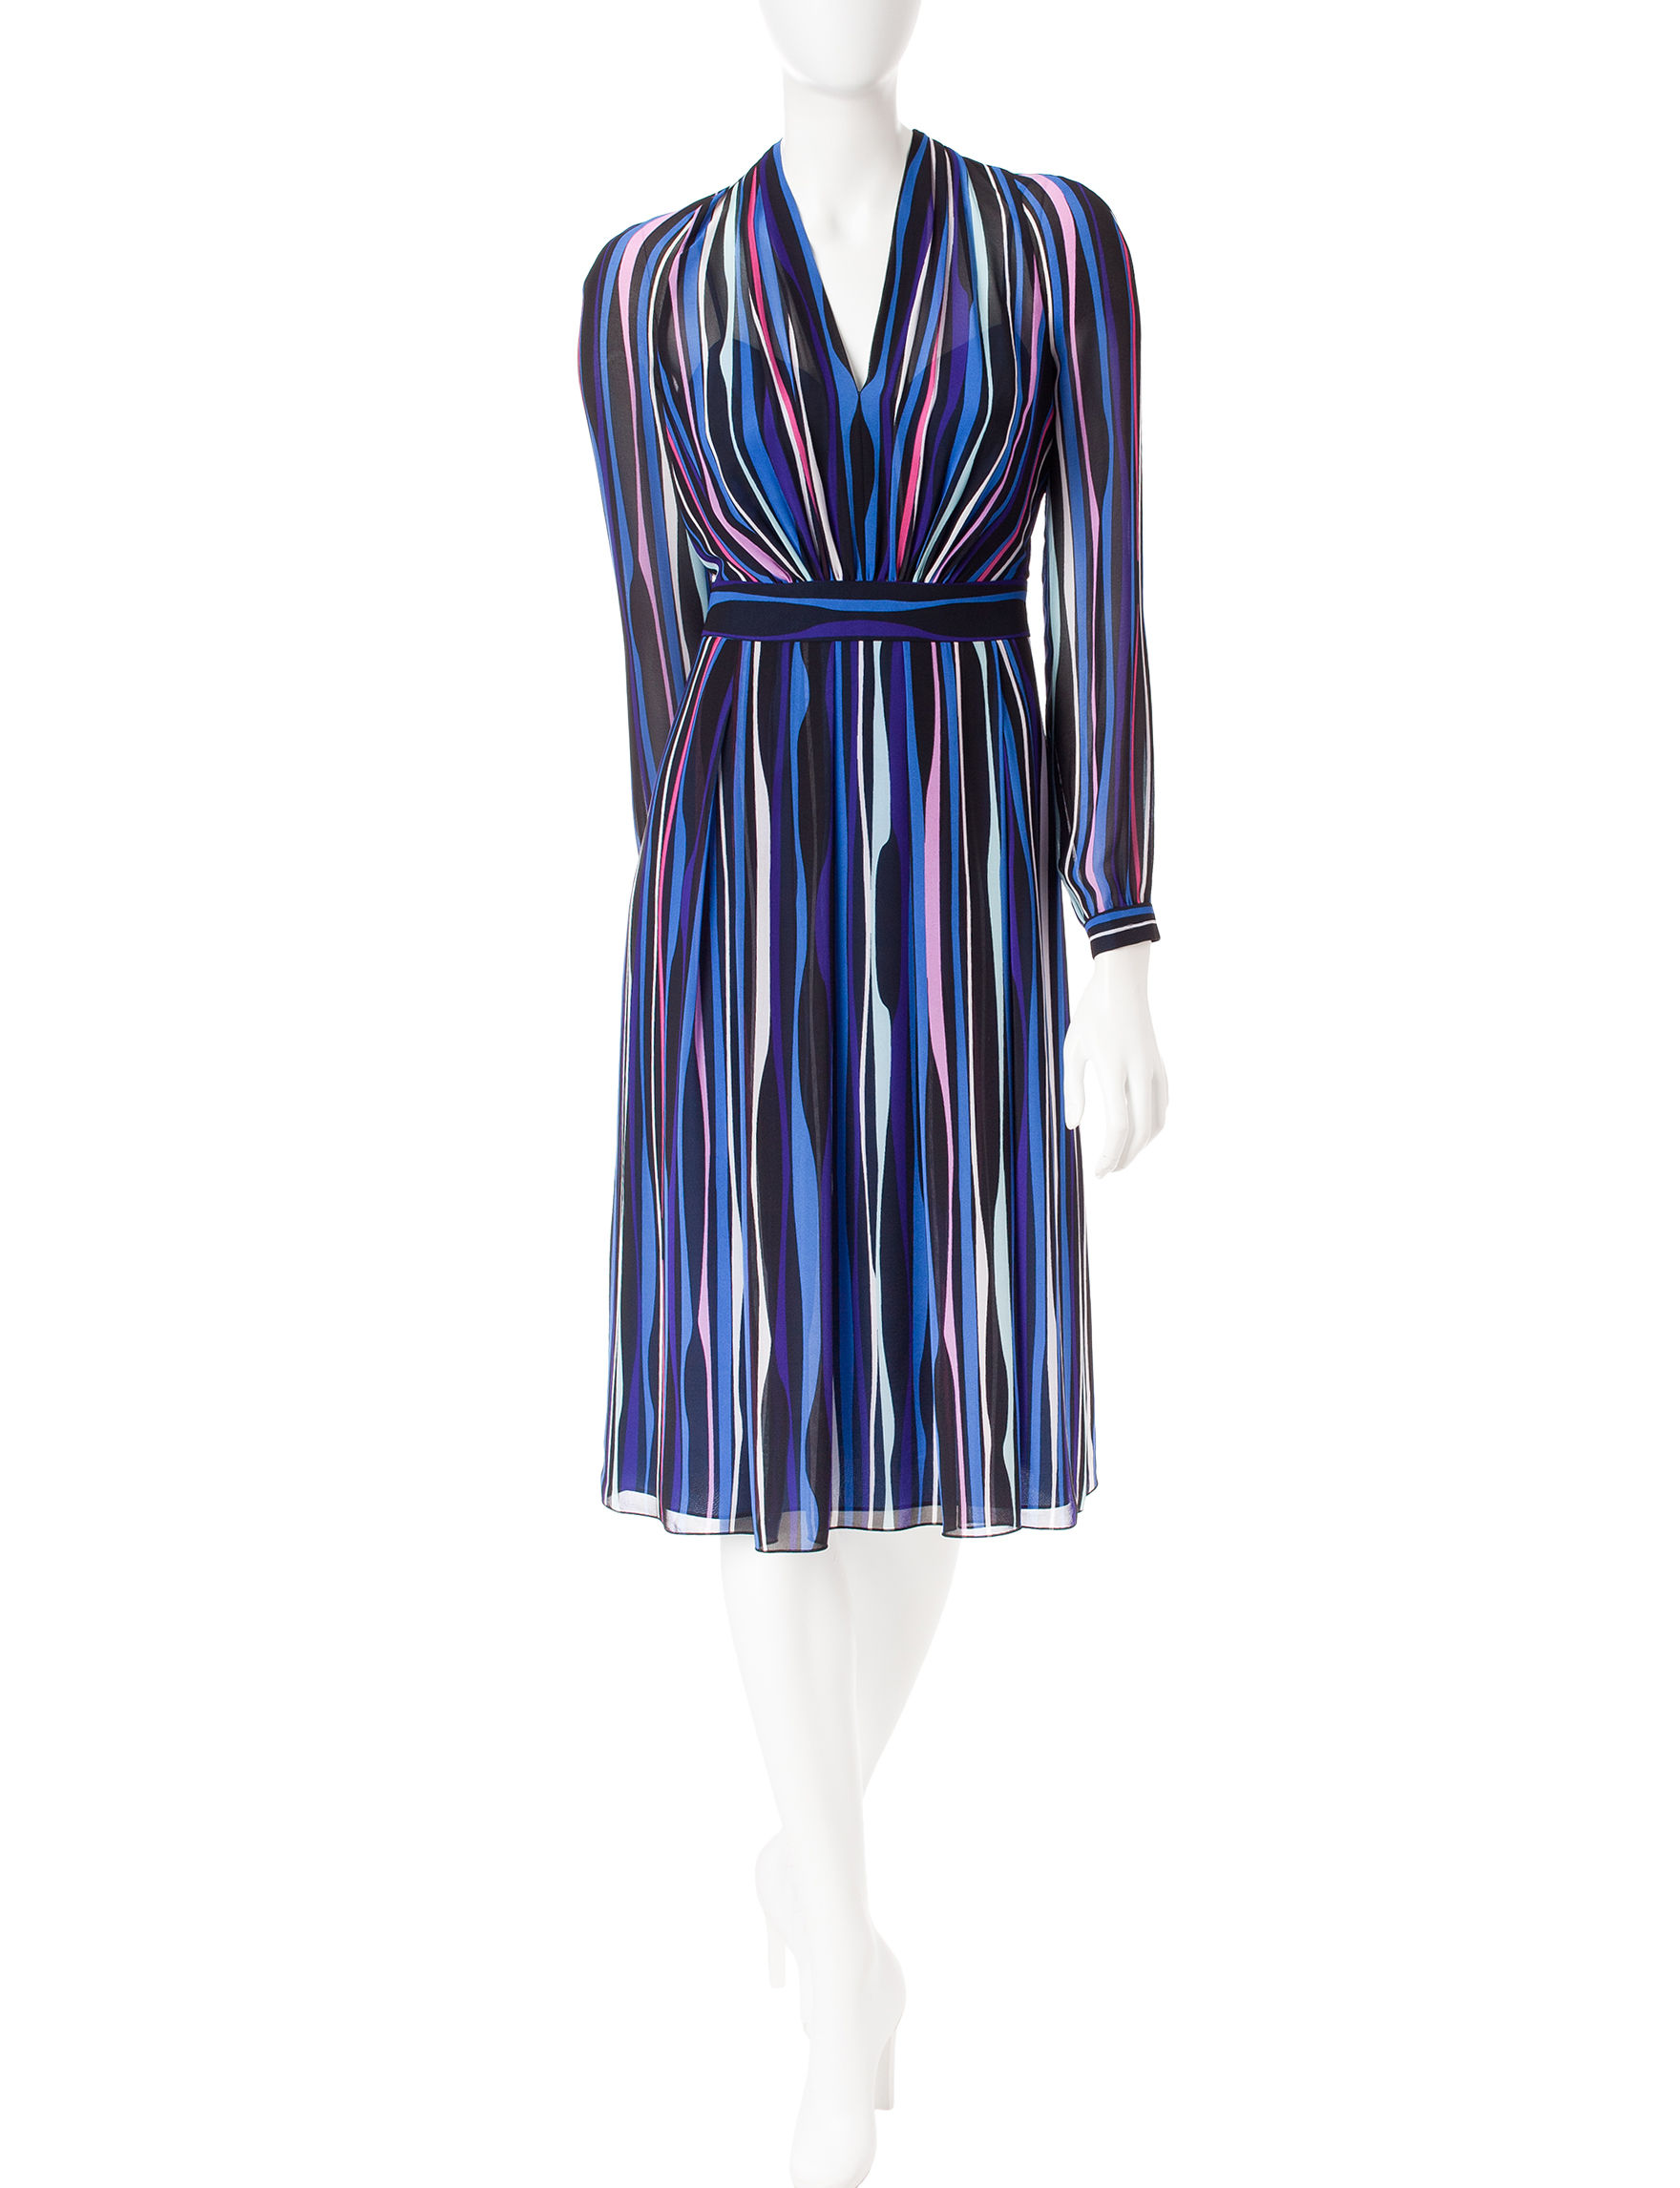 Anne Klein Black / Blue Everyday & Casual Fit & Flare Dresses